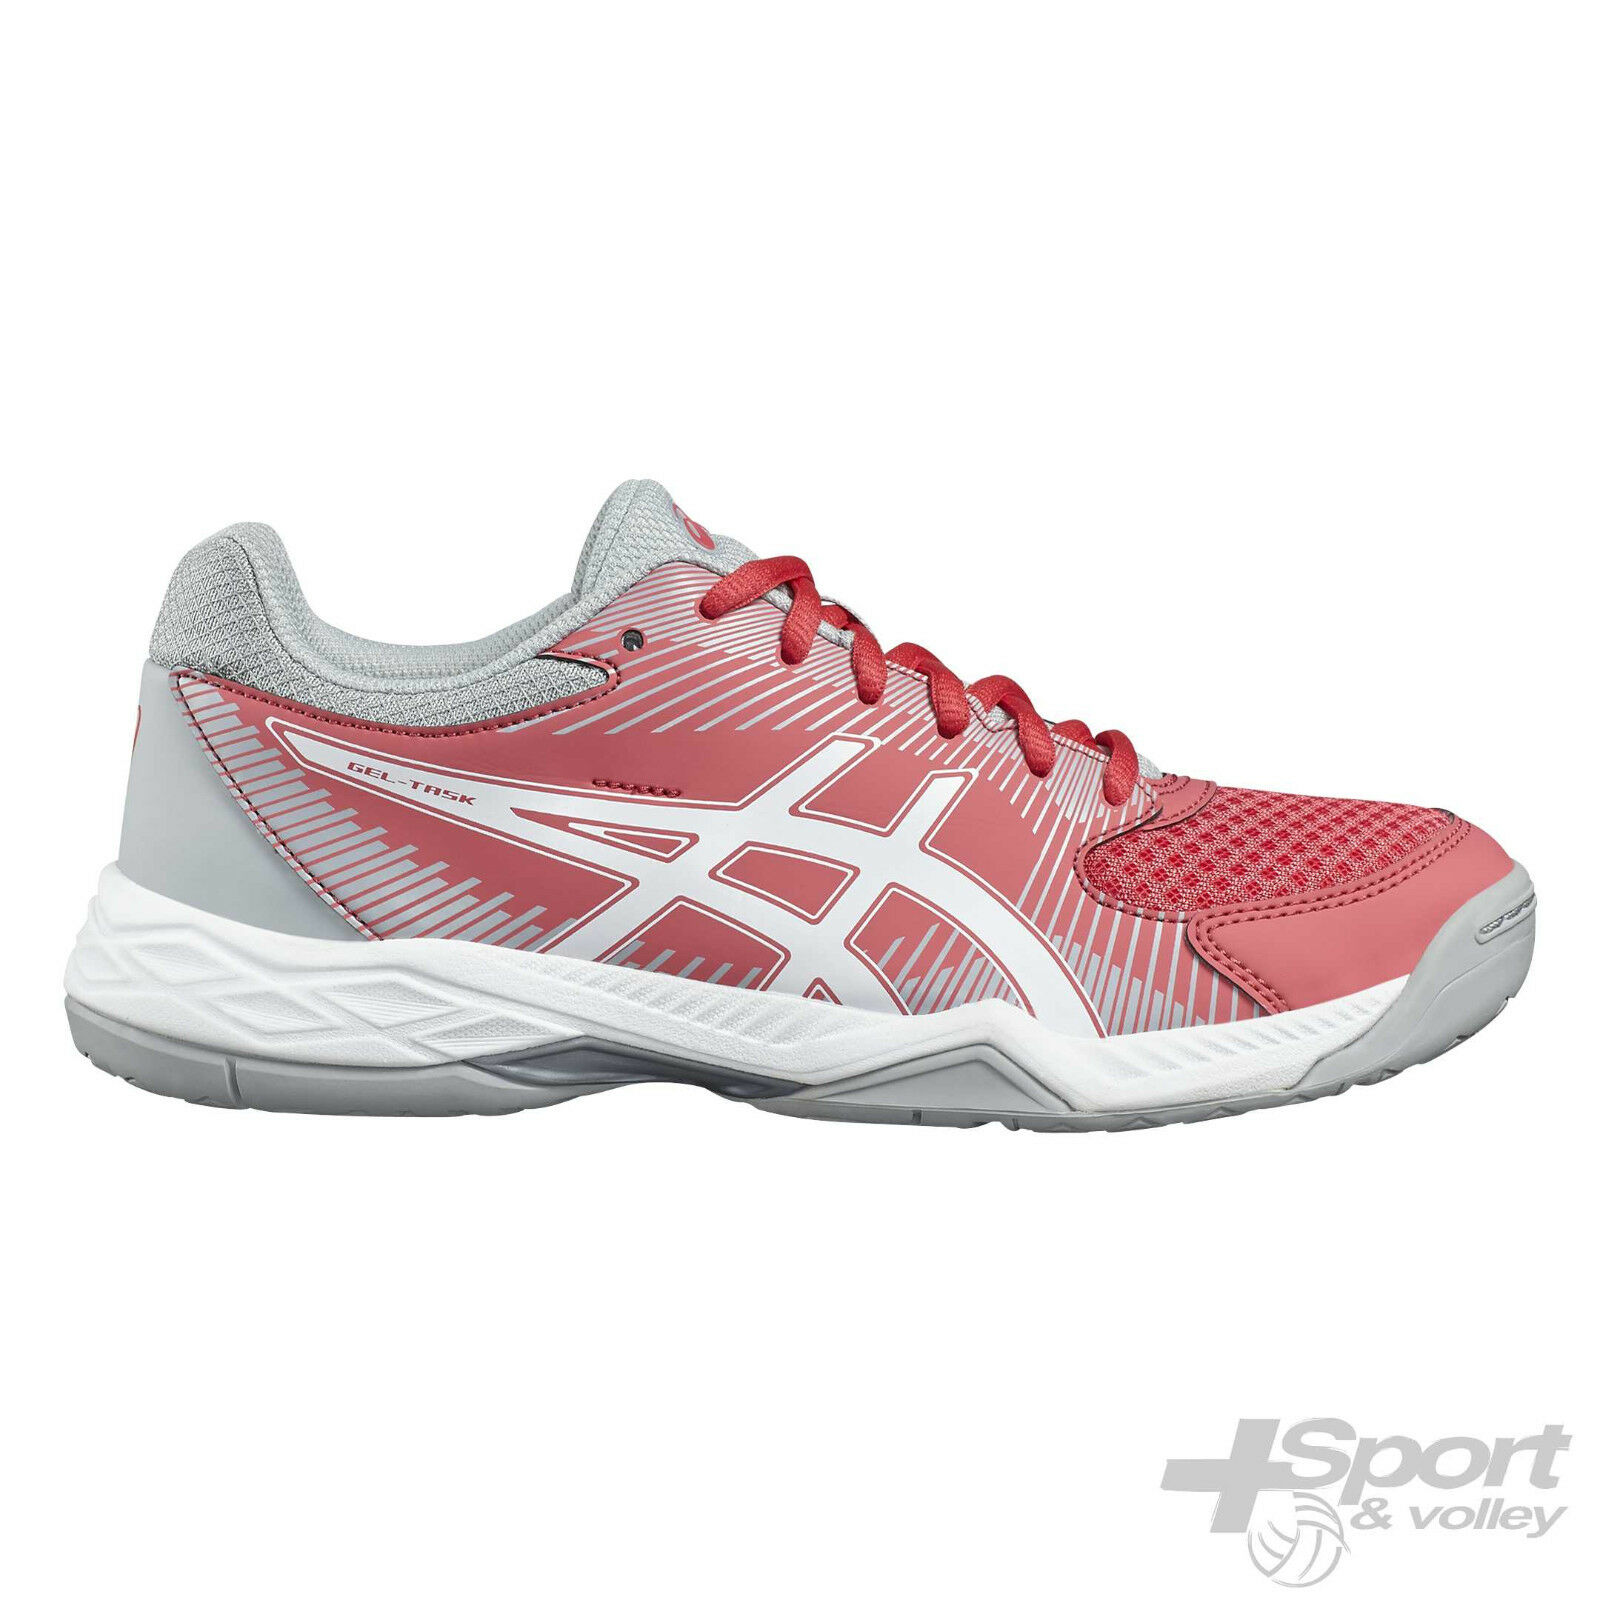 Chaussure volley-ball Asics Gel Task Faible Femme B754Y 1901